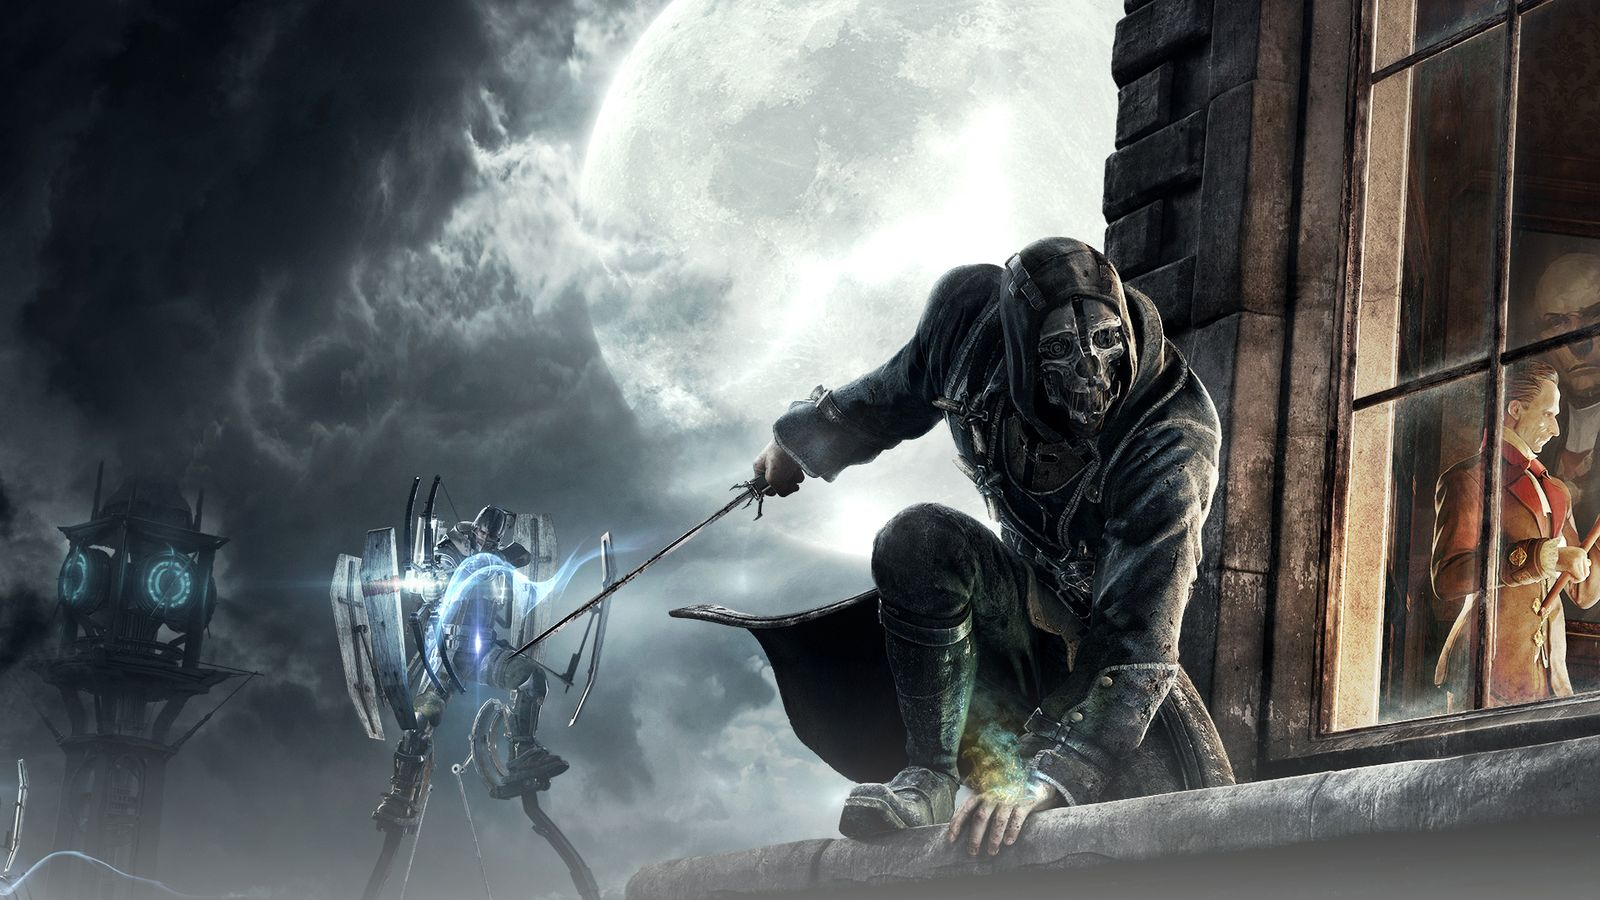 dishonored images corvo hd wallpaper and background photos